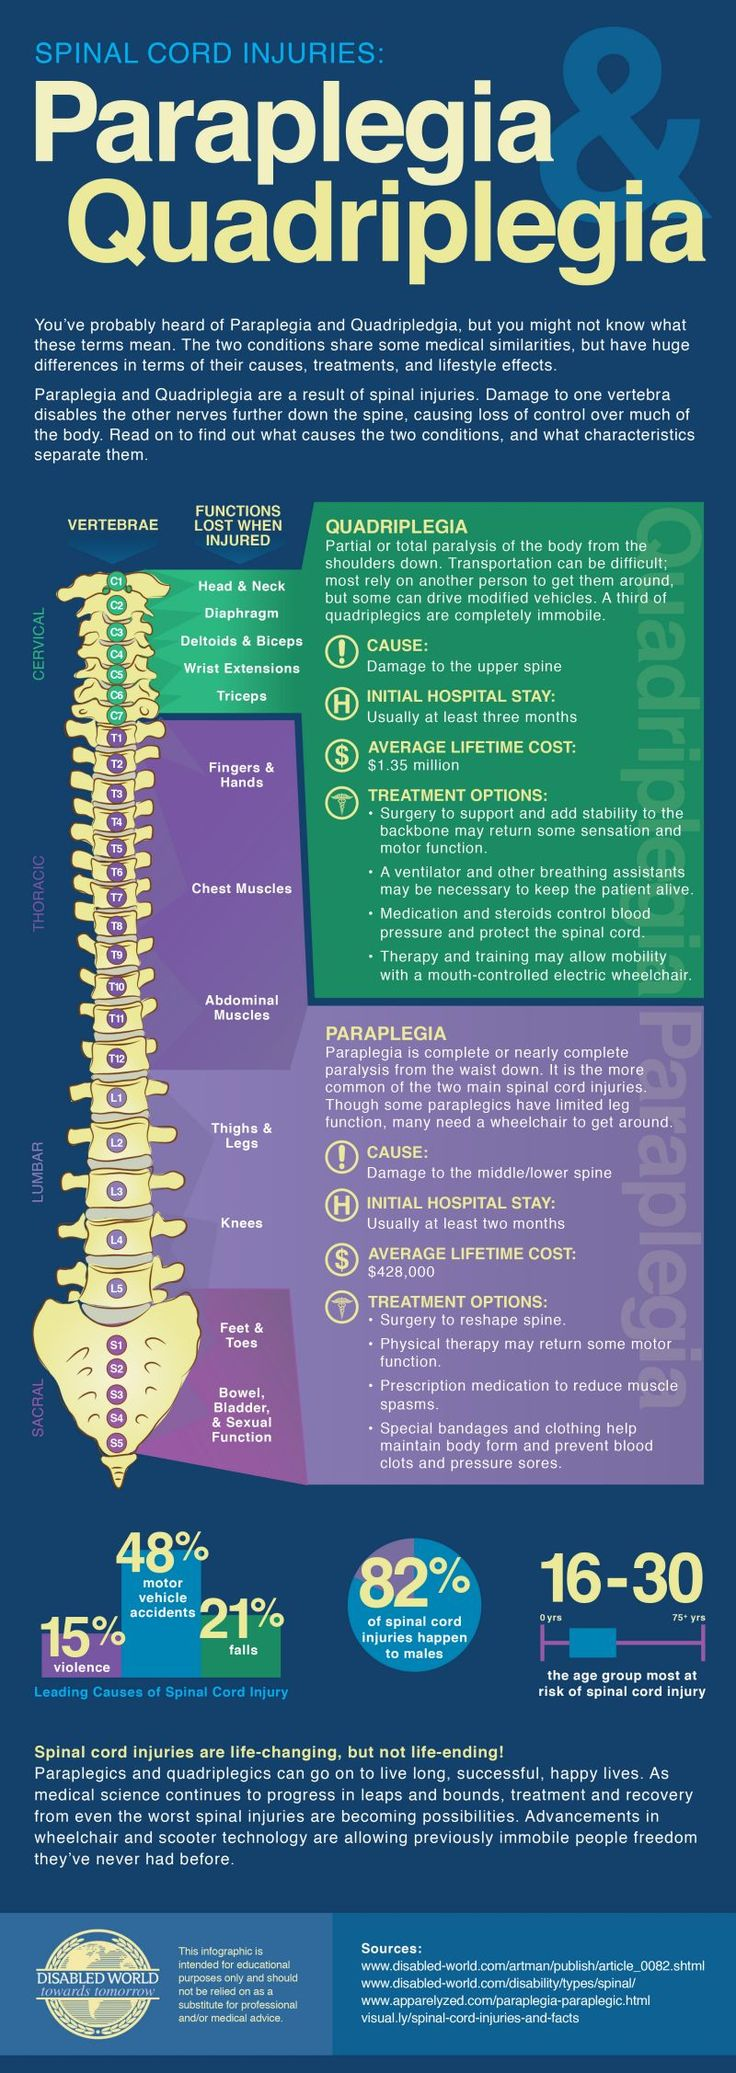 Quick reference to share material about spinal cord injury (SCI). See it everyday and always seem to learn something new